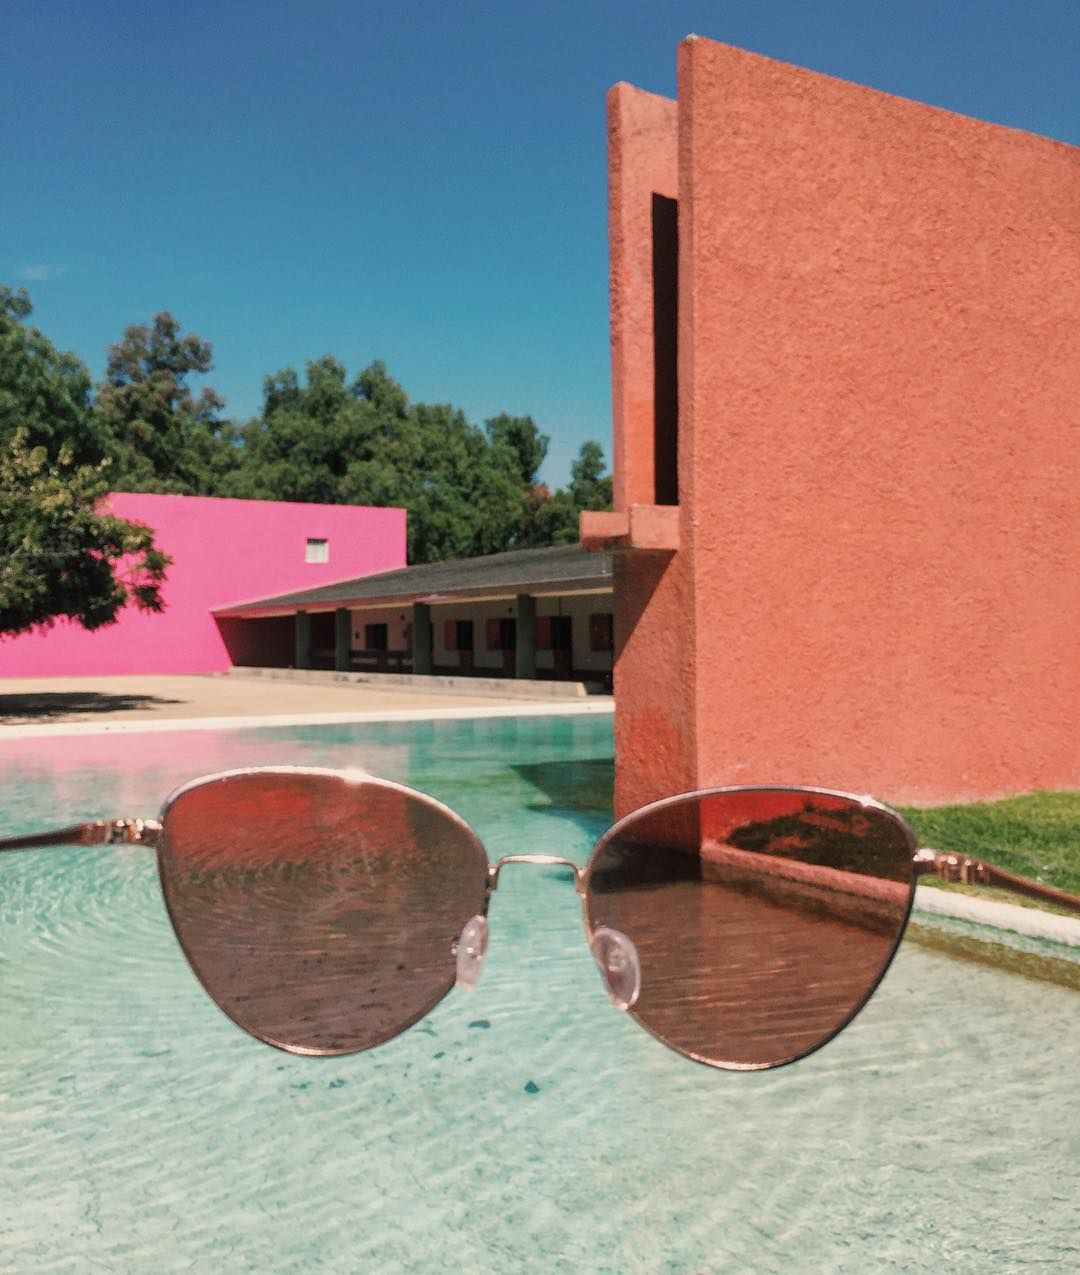 today we sunbathed in Cuadra San Cristobal, the equestrian stables by Mexican architect Luis Barragán.   #sunniesstudios